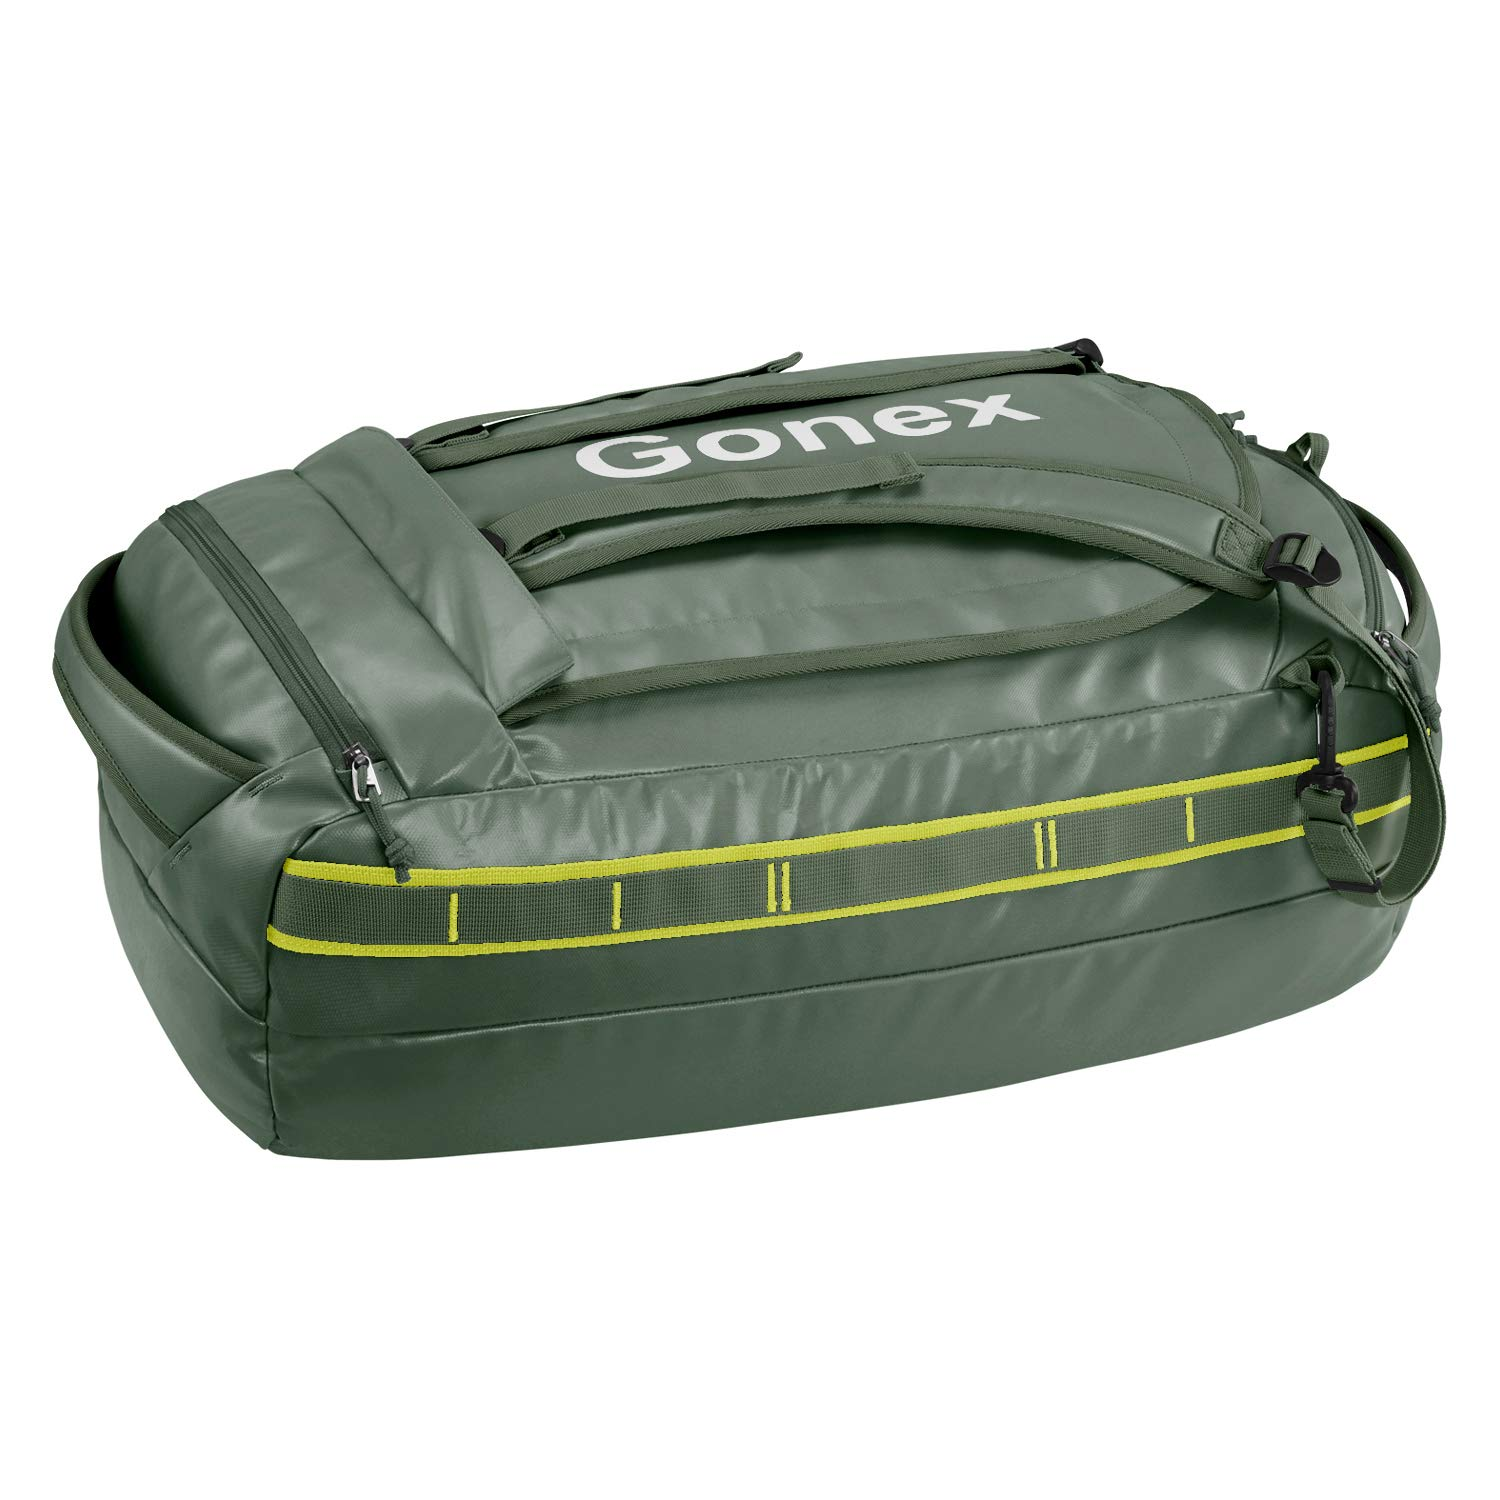 Gonex Foldable Duffle Bag Heavy Duty Duffel with Backpack Straps Water Repellent Load Hauler for Hiking Camping Travelling Cycling for Men Women 40L 60L 80L